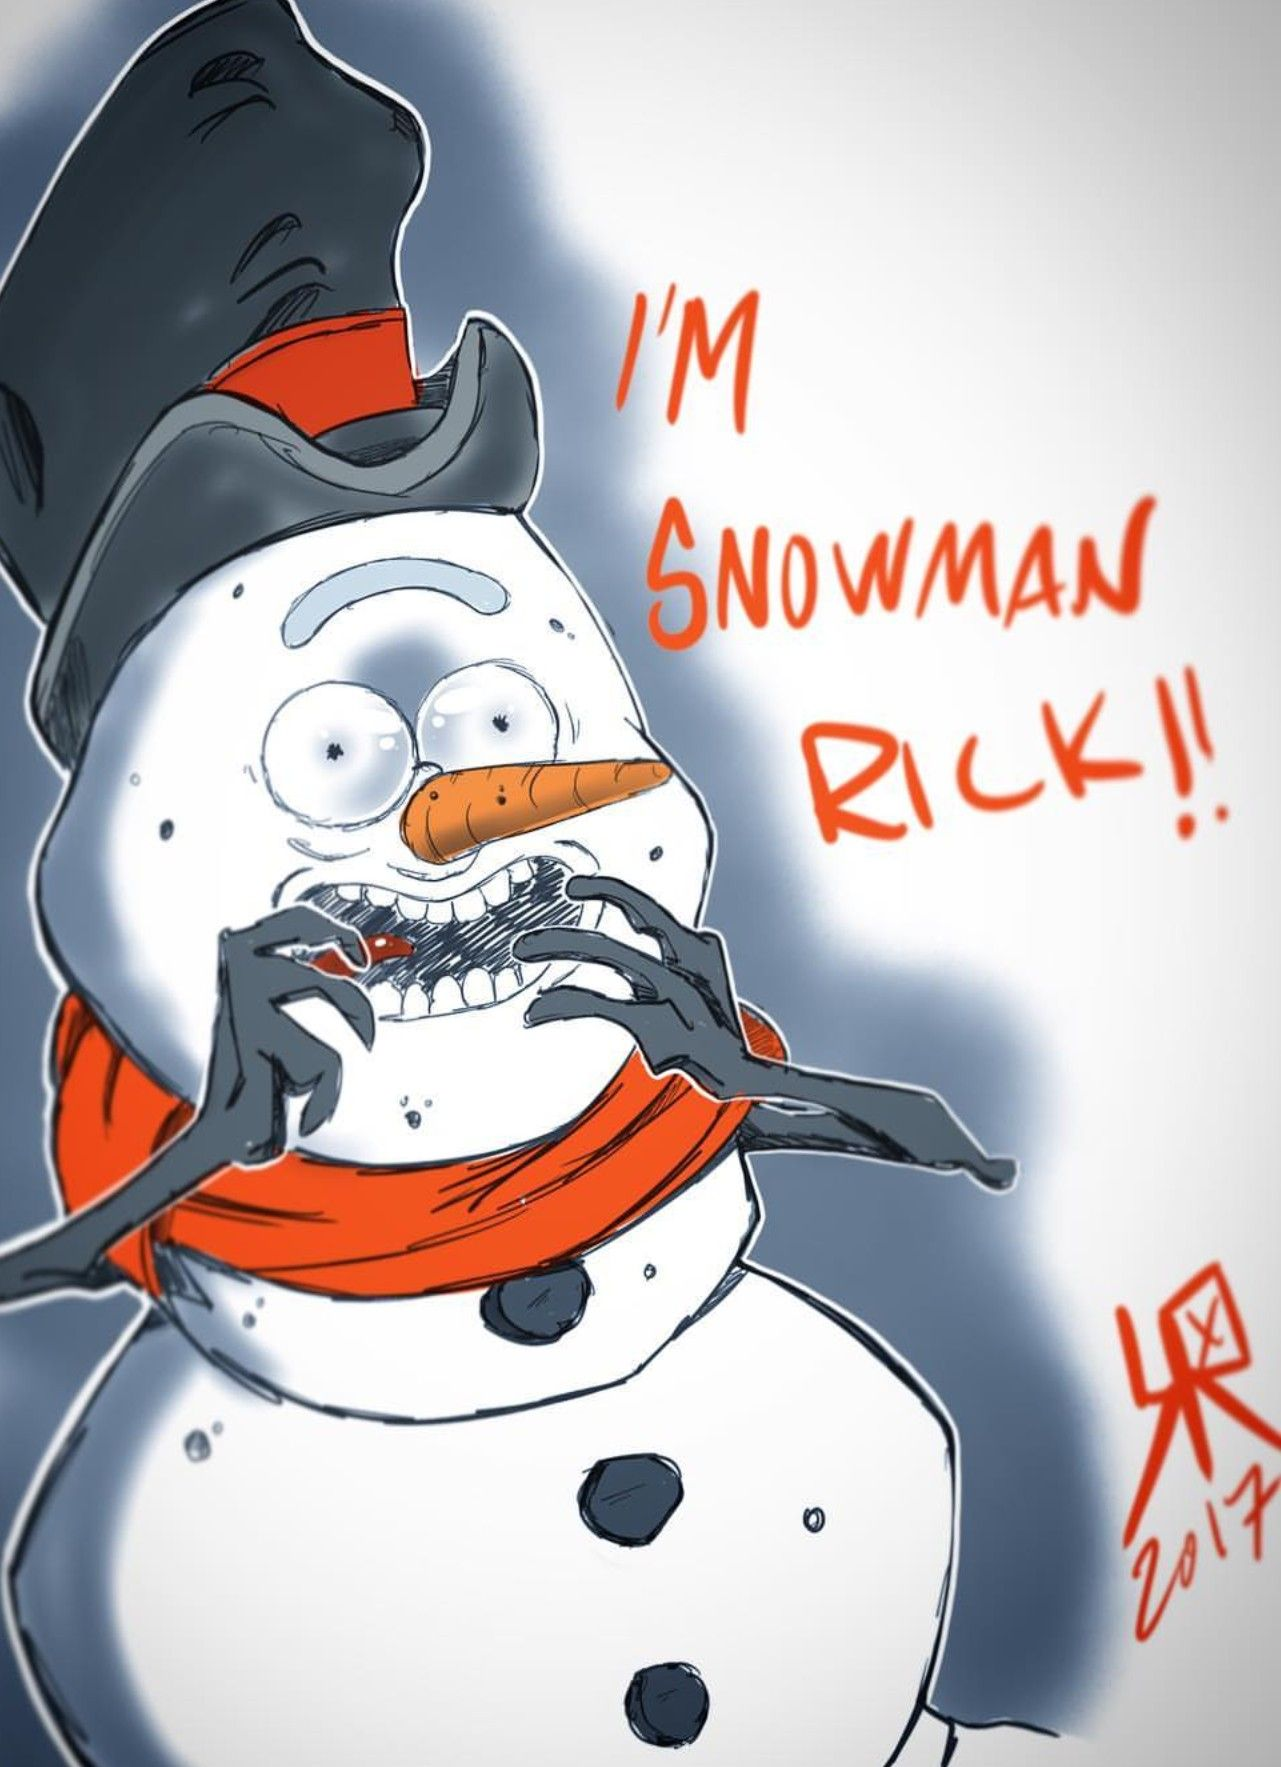 Rick and Morty x Snowman Rick!! (With images)   R rick and ...